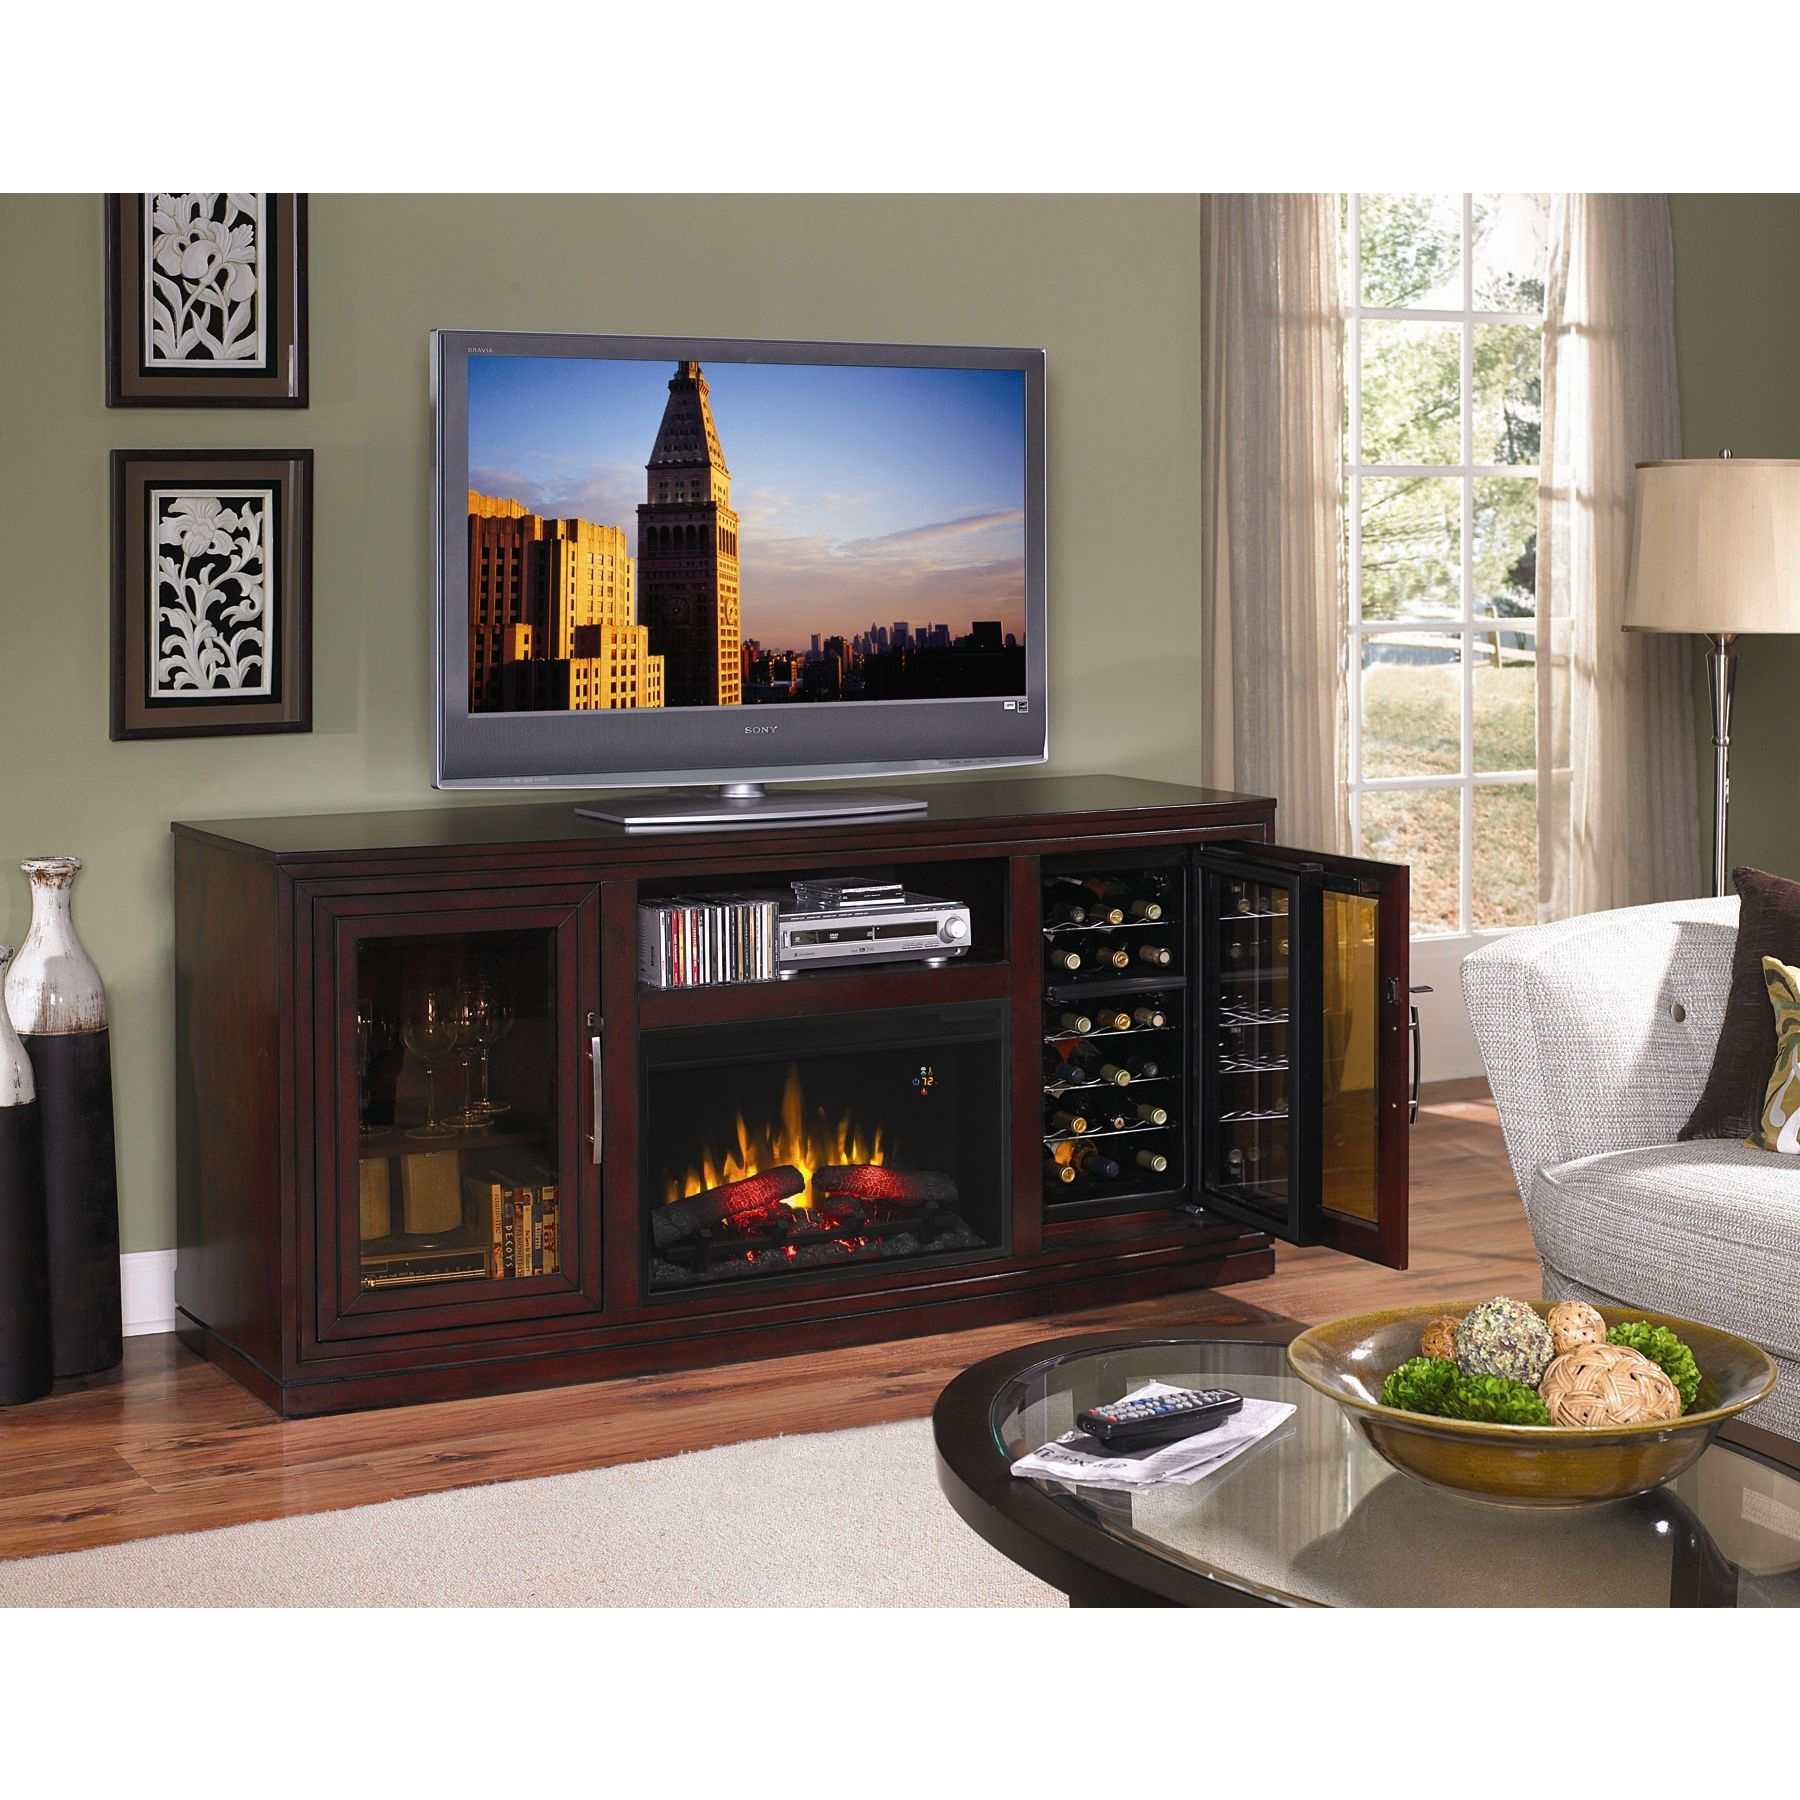 Tv Stand, Fireplace, Wine Rack | For The Home In 2019 | Pinterest in Wyatt 68 Inch Tv Stands (Image 23 of 30)